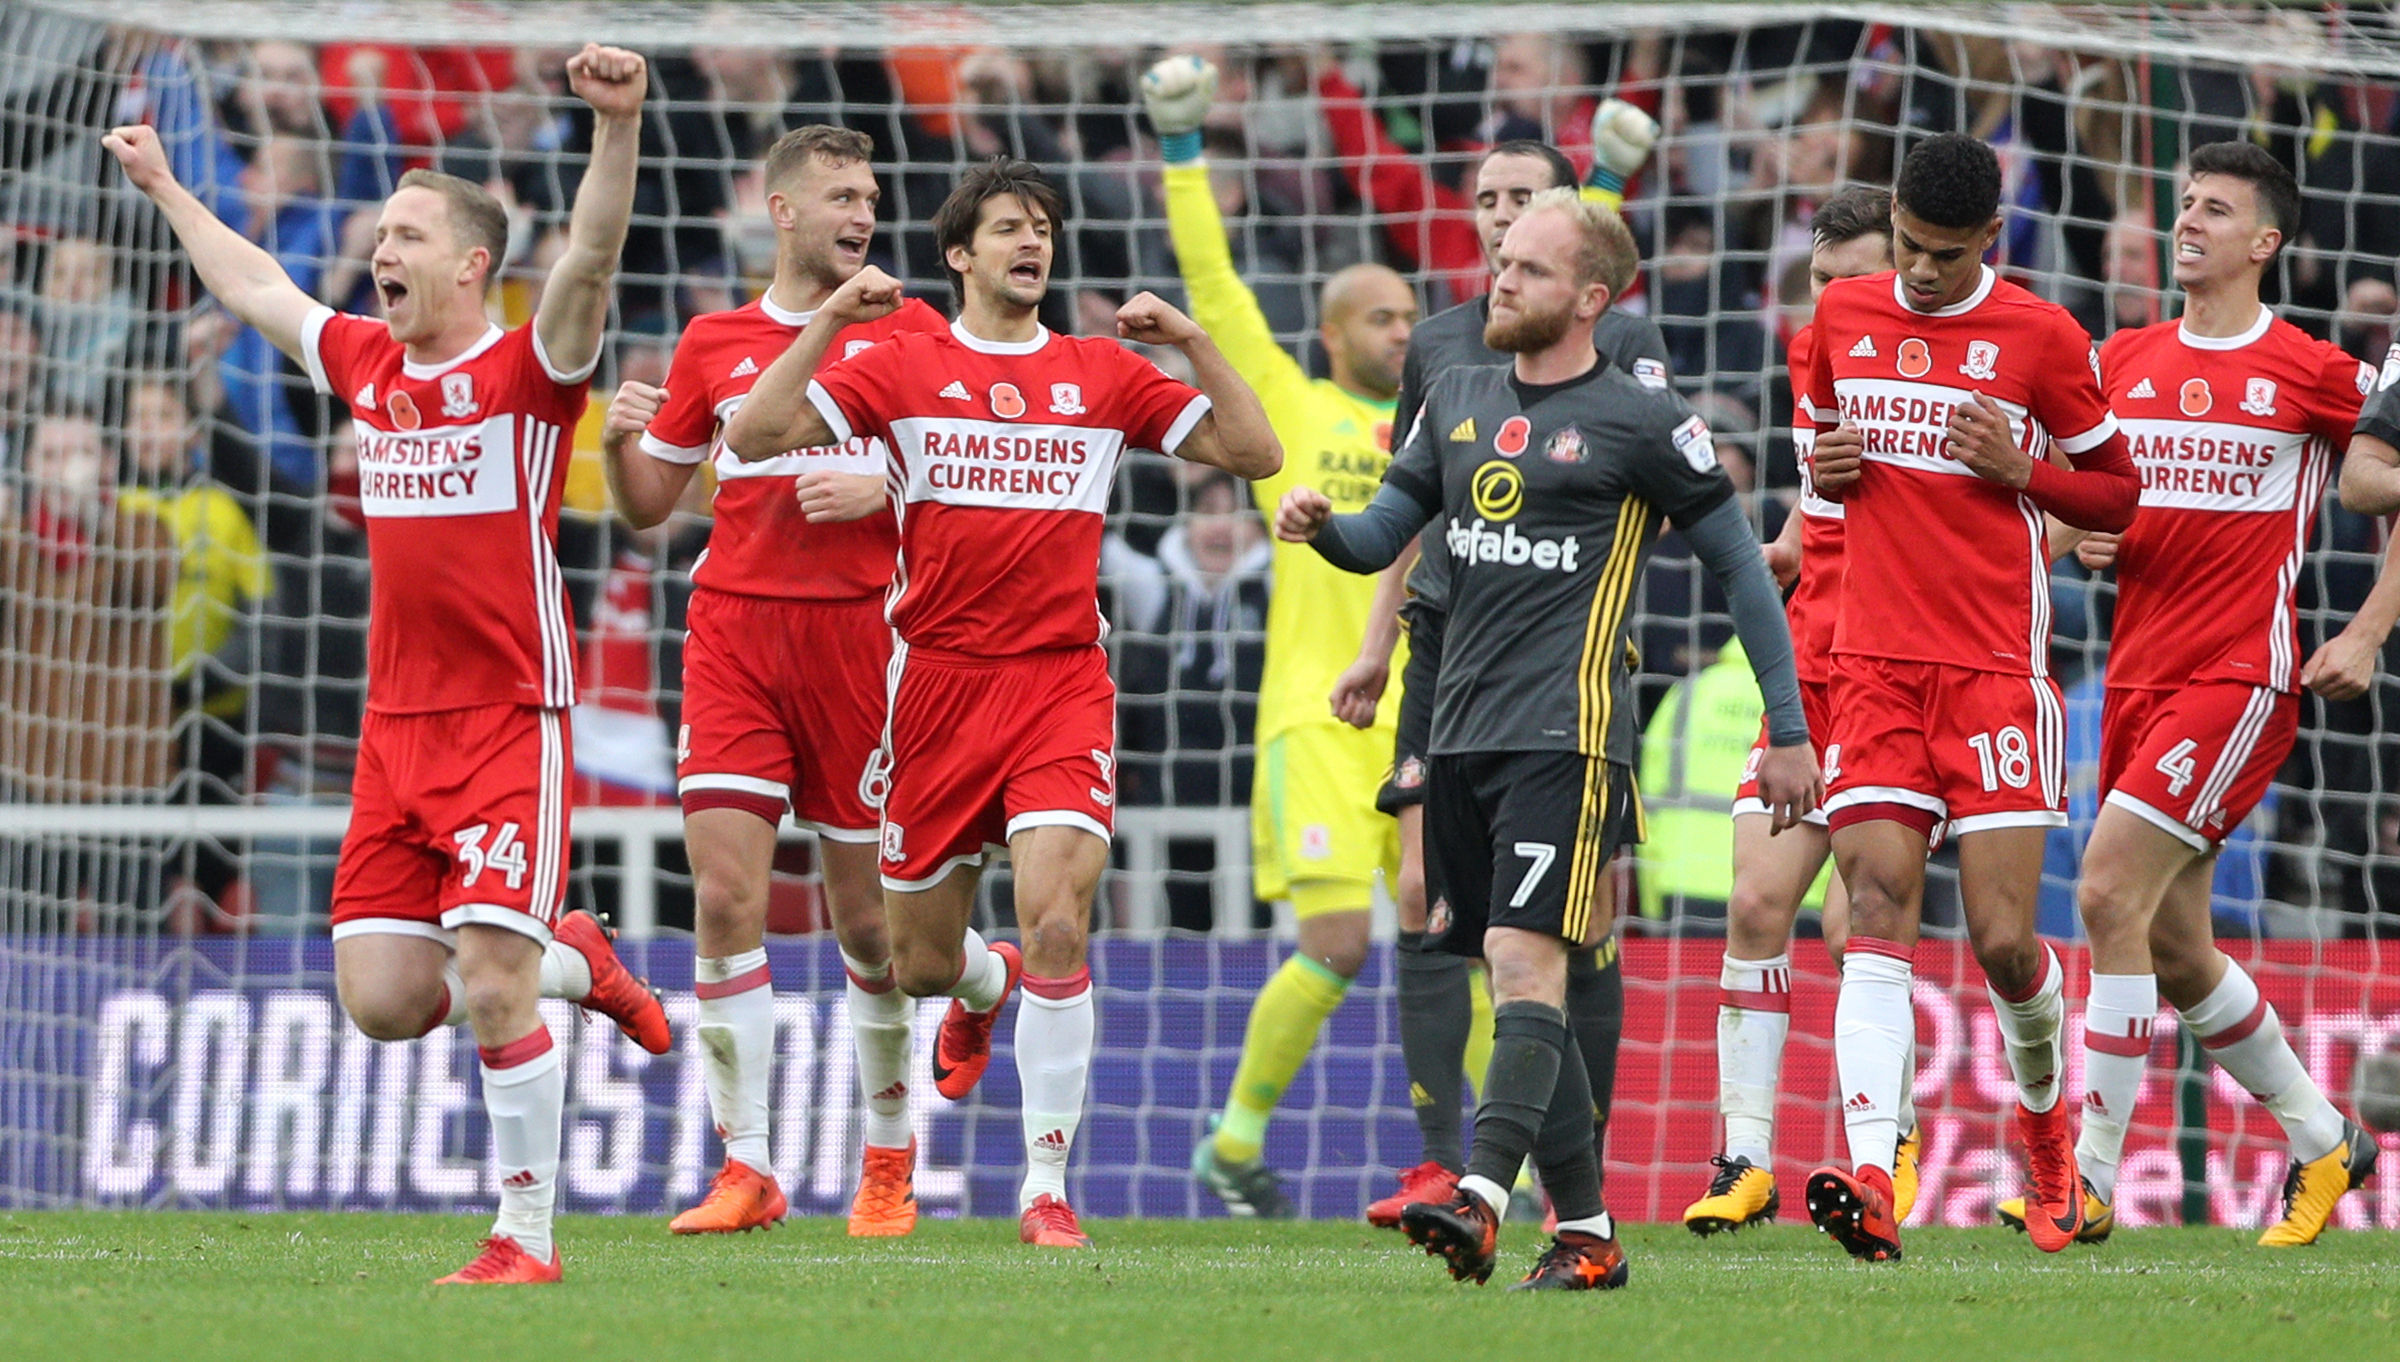 DELIGHT: Ramsdens Holdings says its currency division has played a key part in its recent growth. The operation is a familiar sight to local football fans, with Ramsdens' name emblazoned on Middlesbrough FC's shirts    Picture: PA WIRE